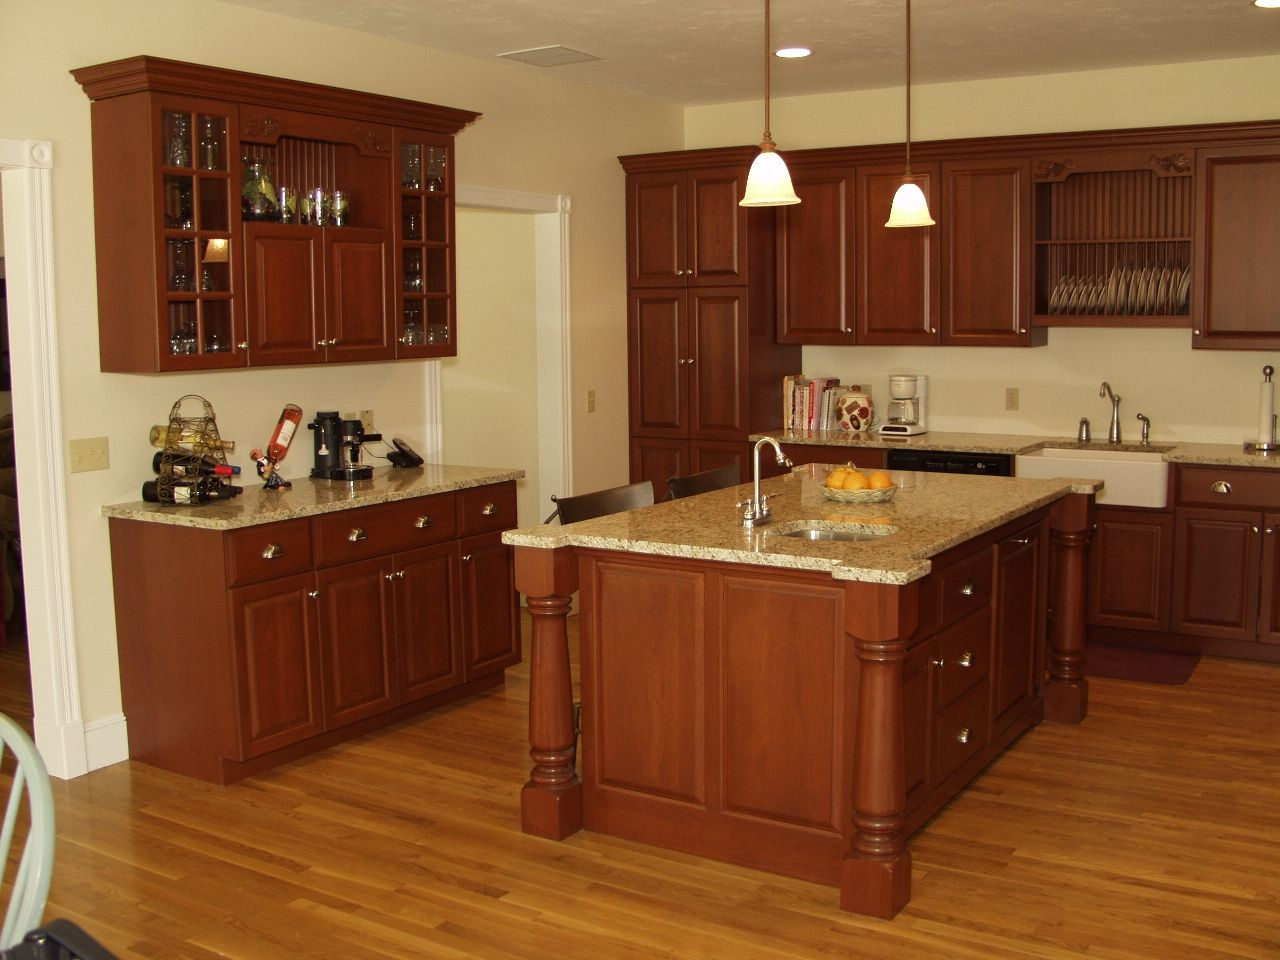 Kitchen quartz countertops with oak cabinets cabinets with for White oak cabinets kitchen